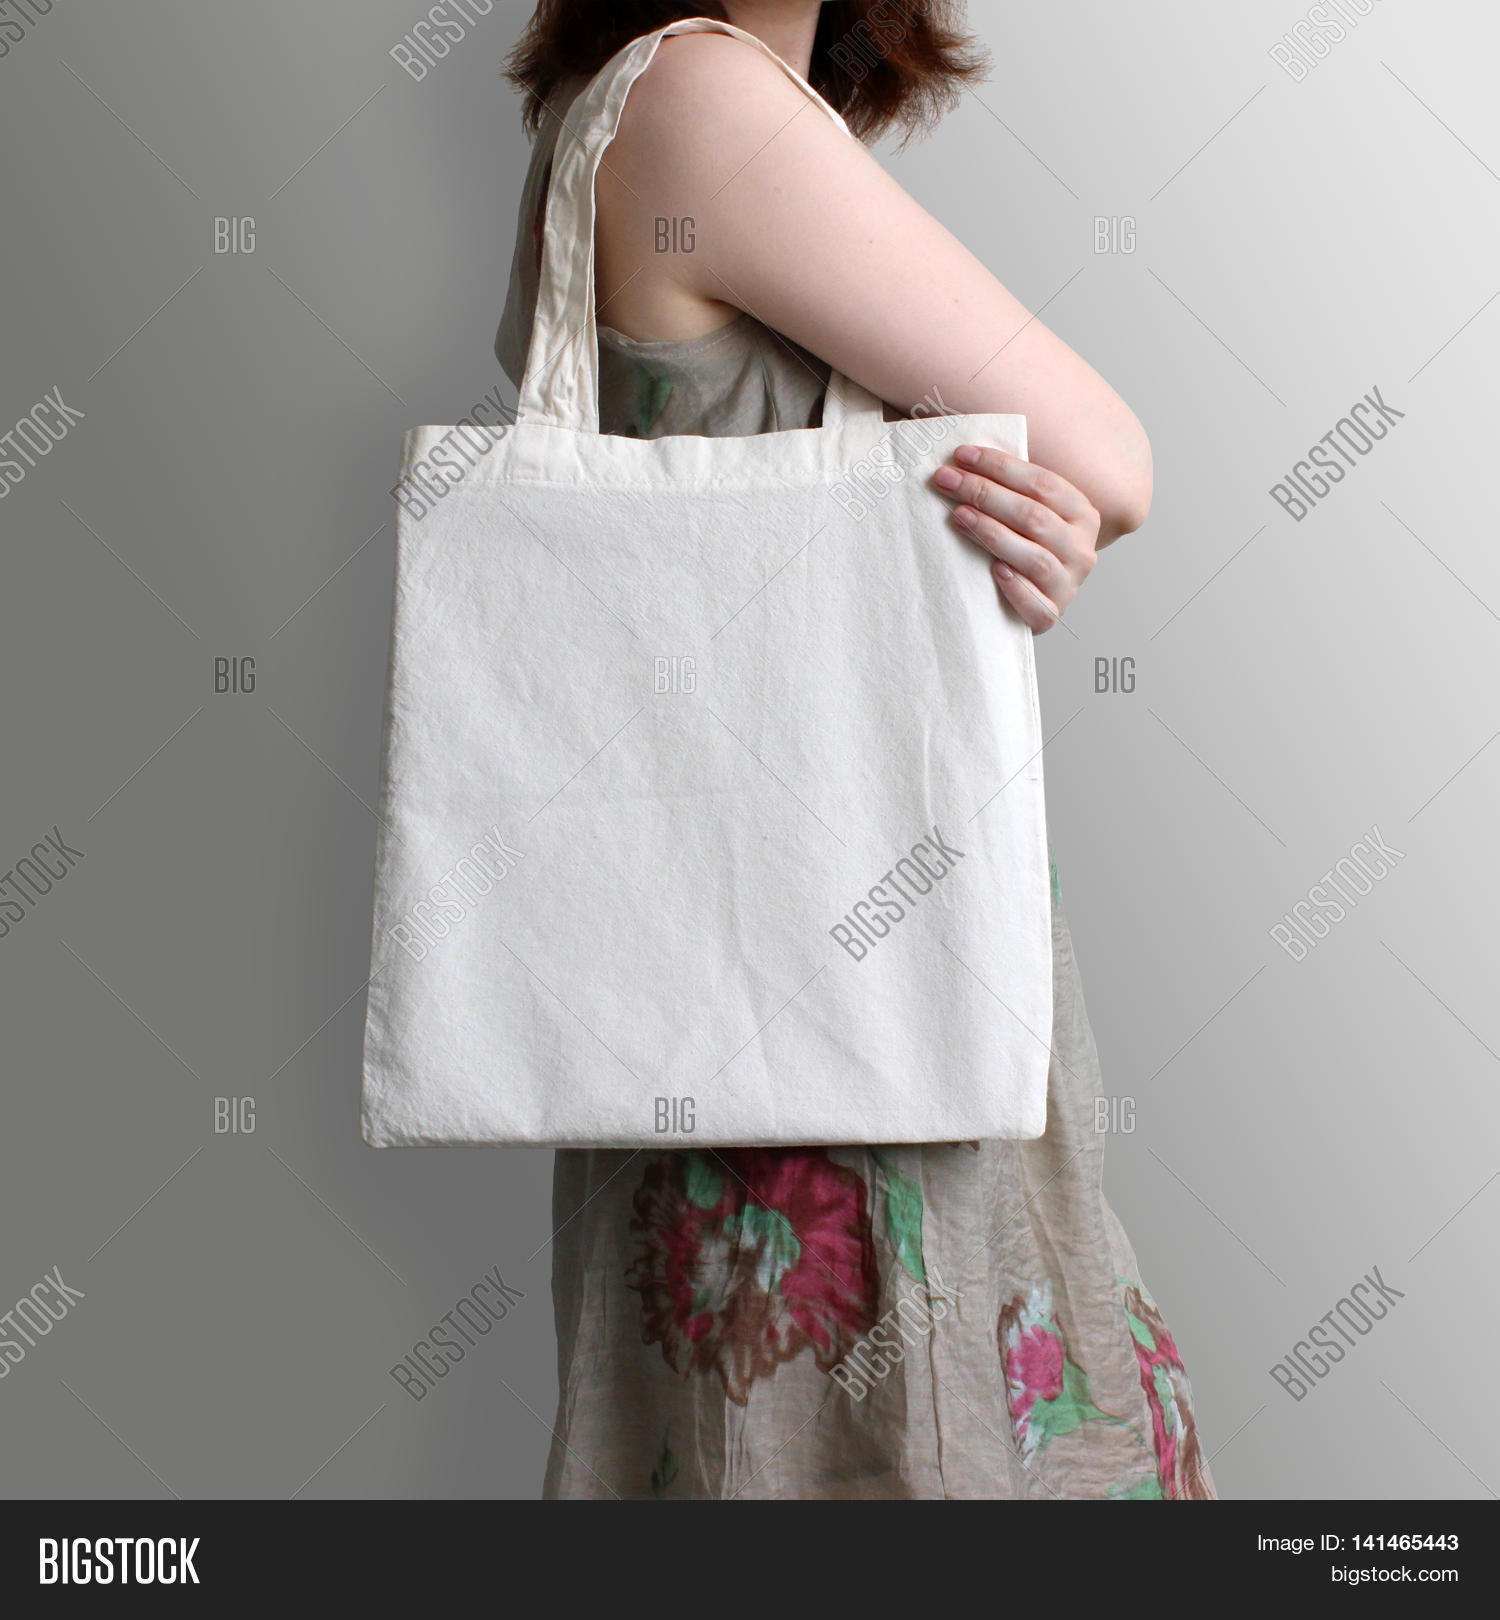 Girl Holding Blank Cotton Eco Tote Image & Photo | Bigstock